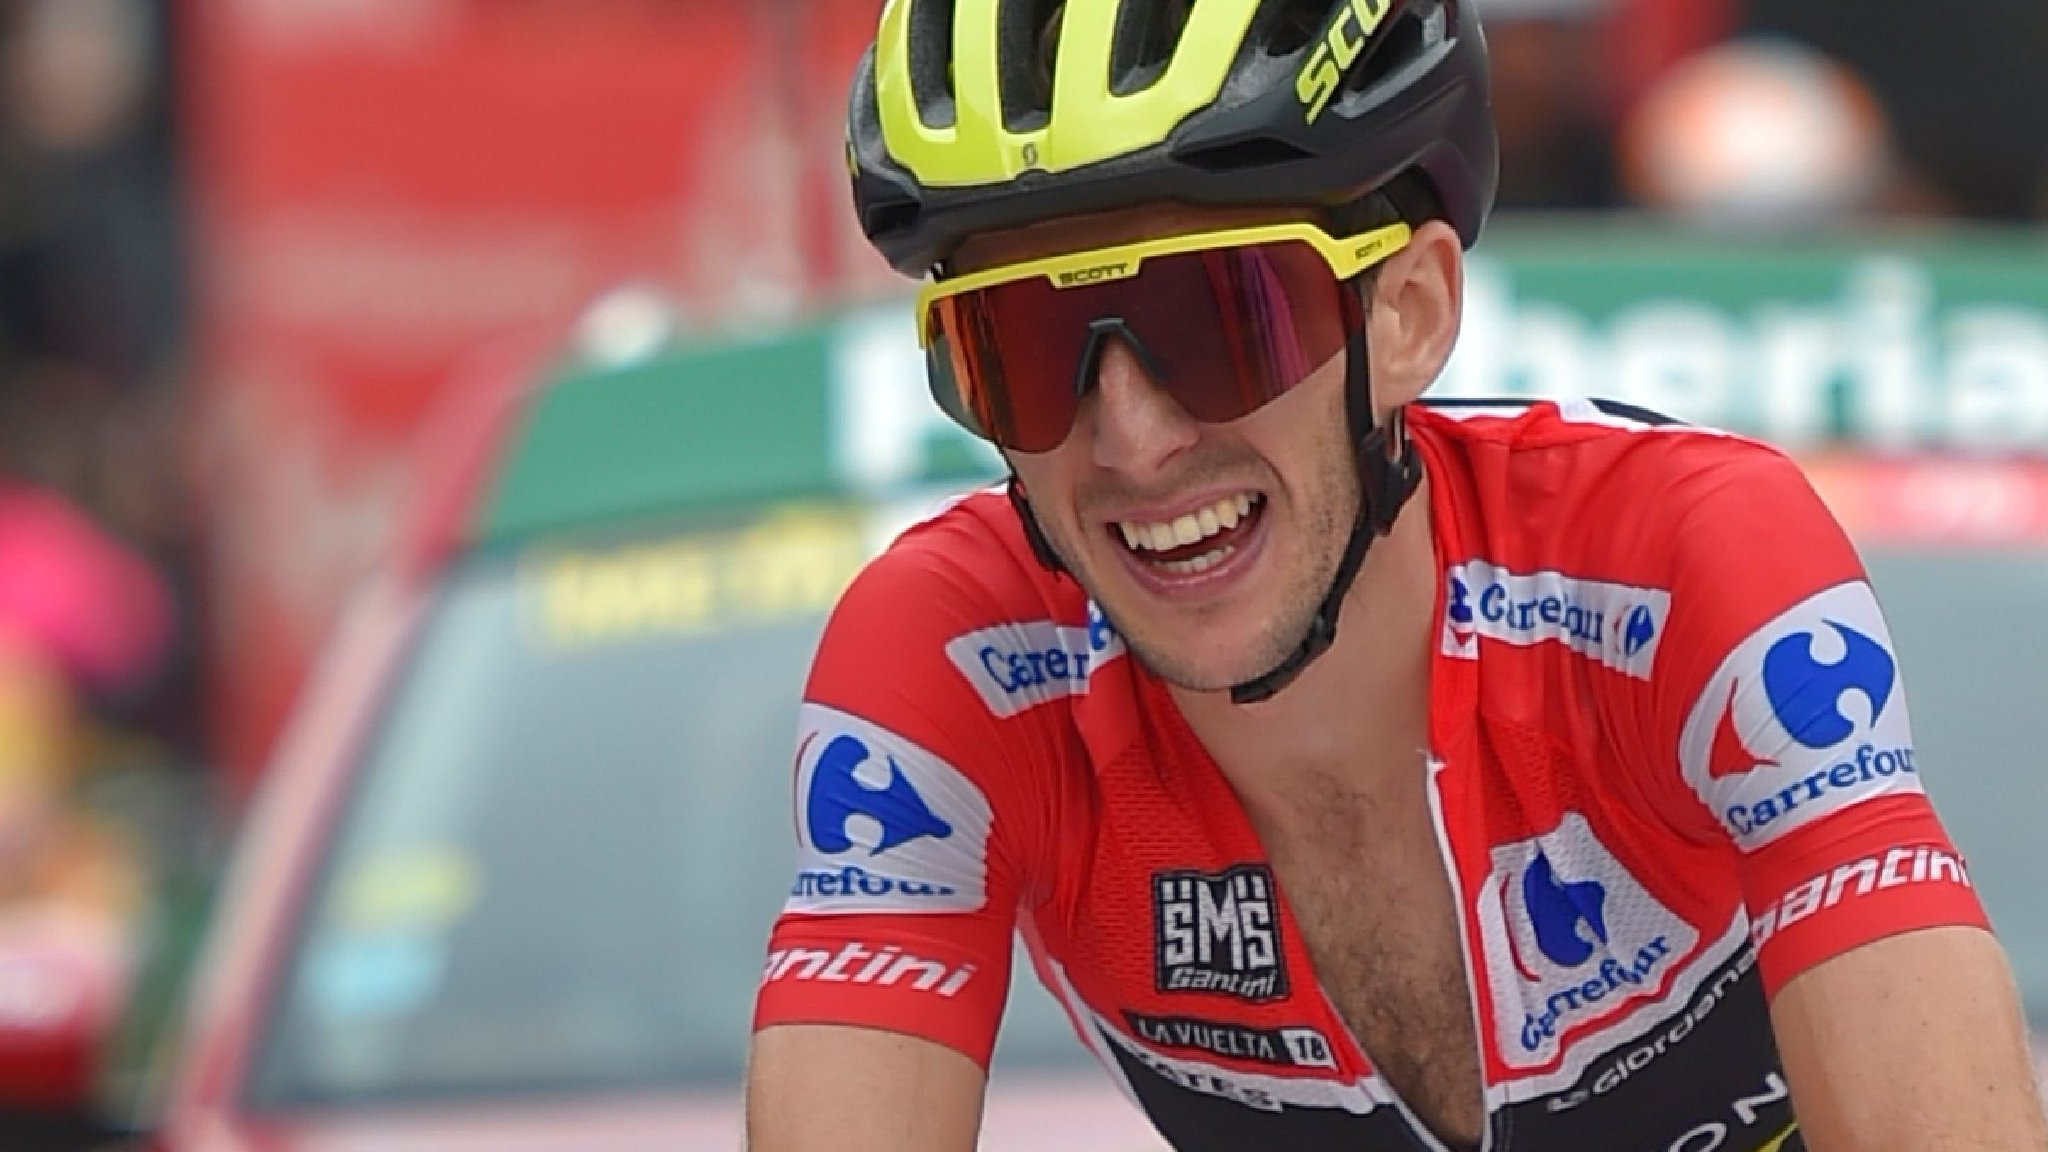 Britain's Simon Yates on verge of Vuelta victory